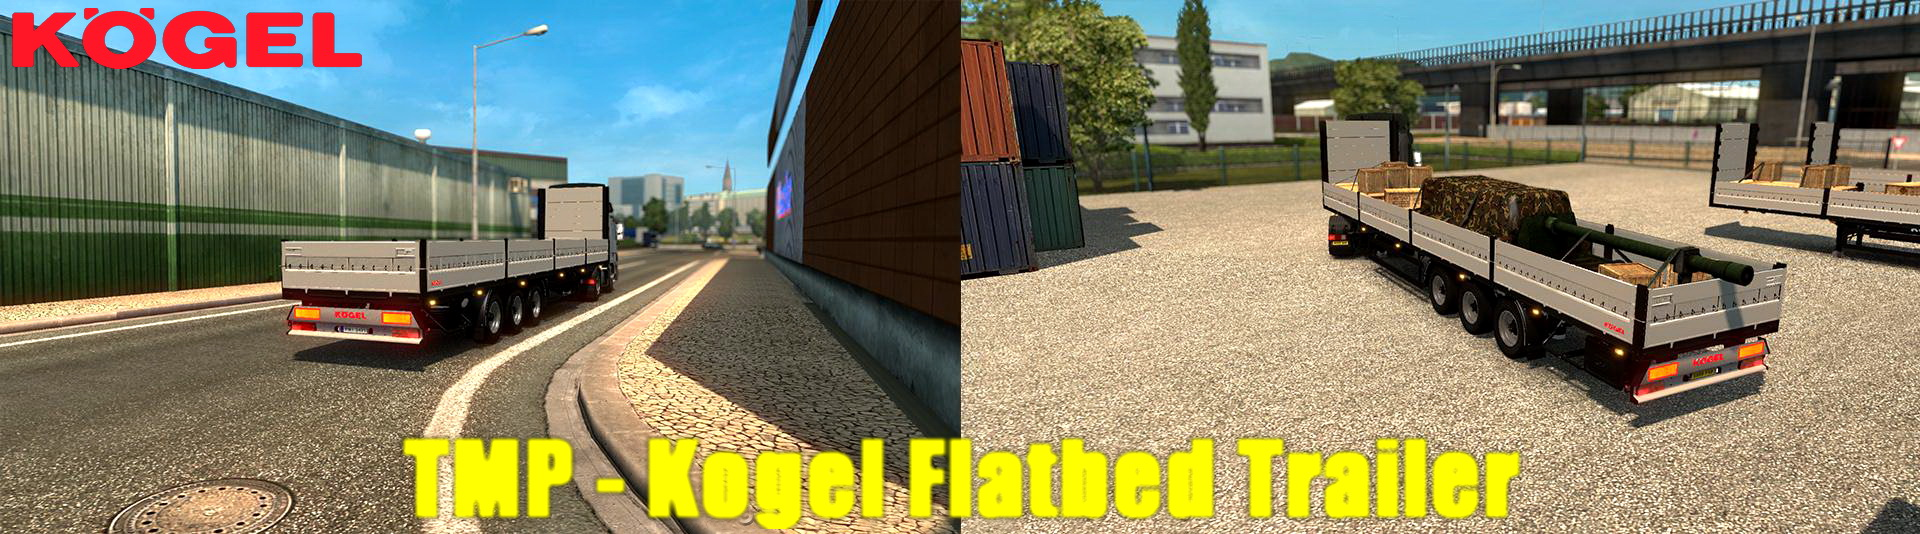 TMP - Kogel Flatbed Trailer v1.2 by satan19990 (1.30.x)